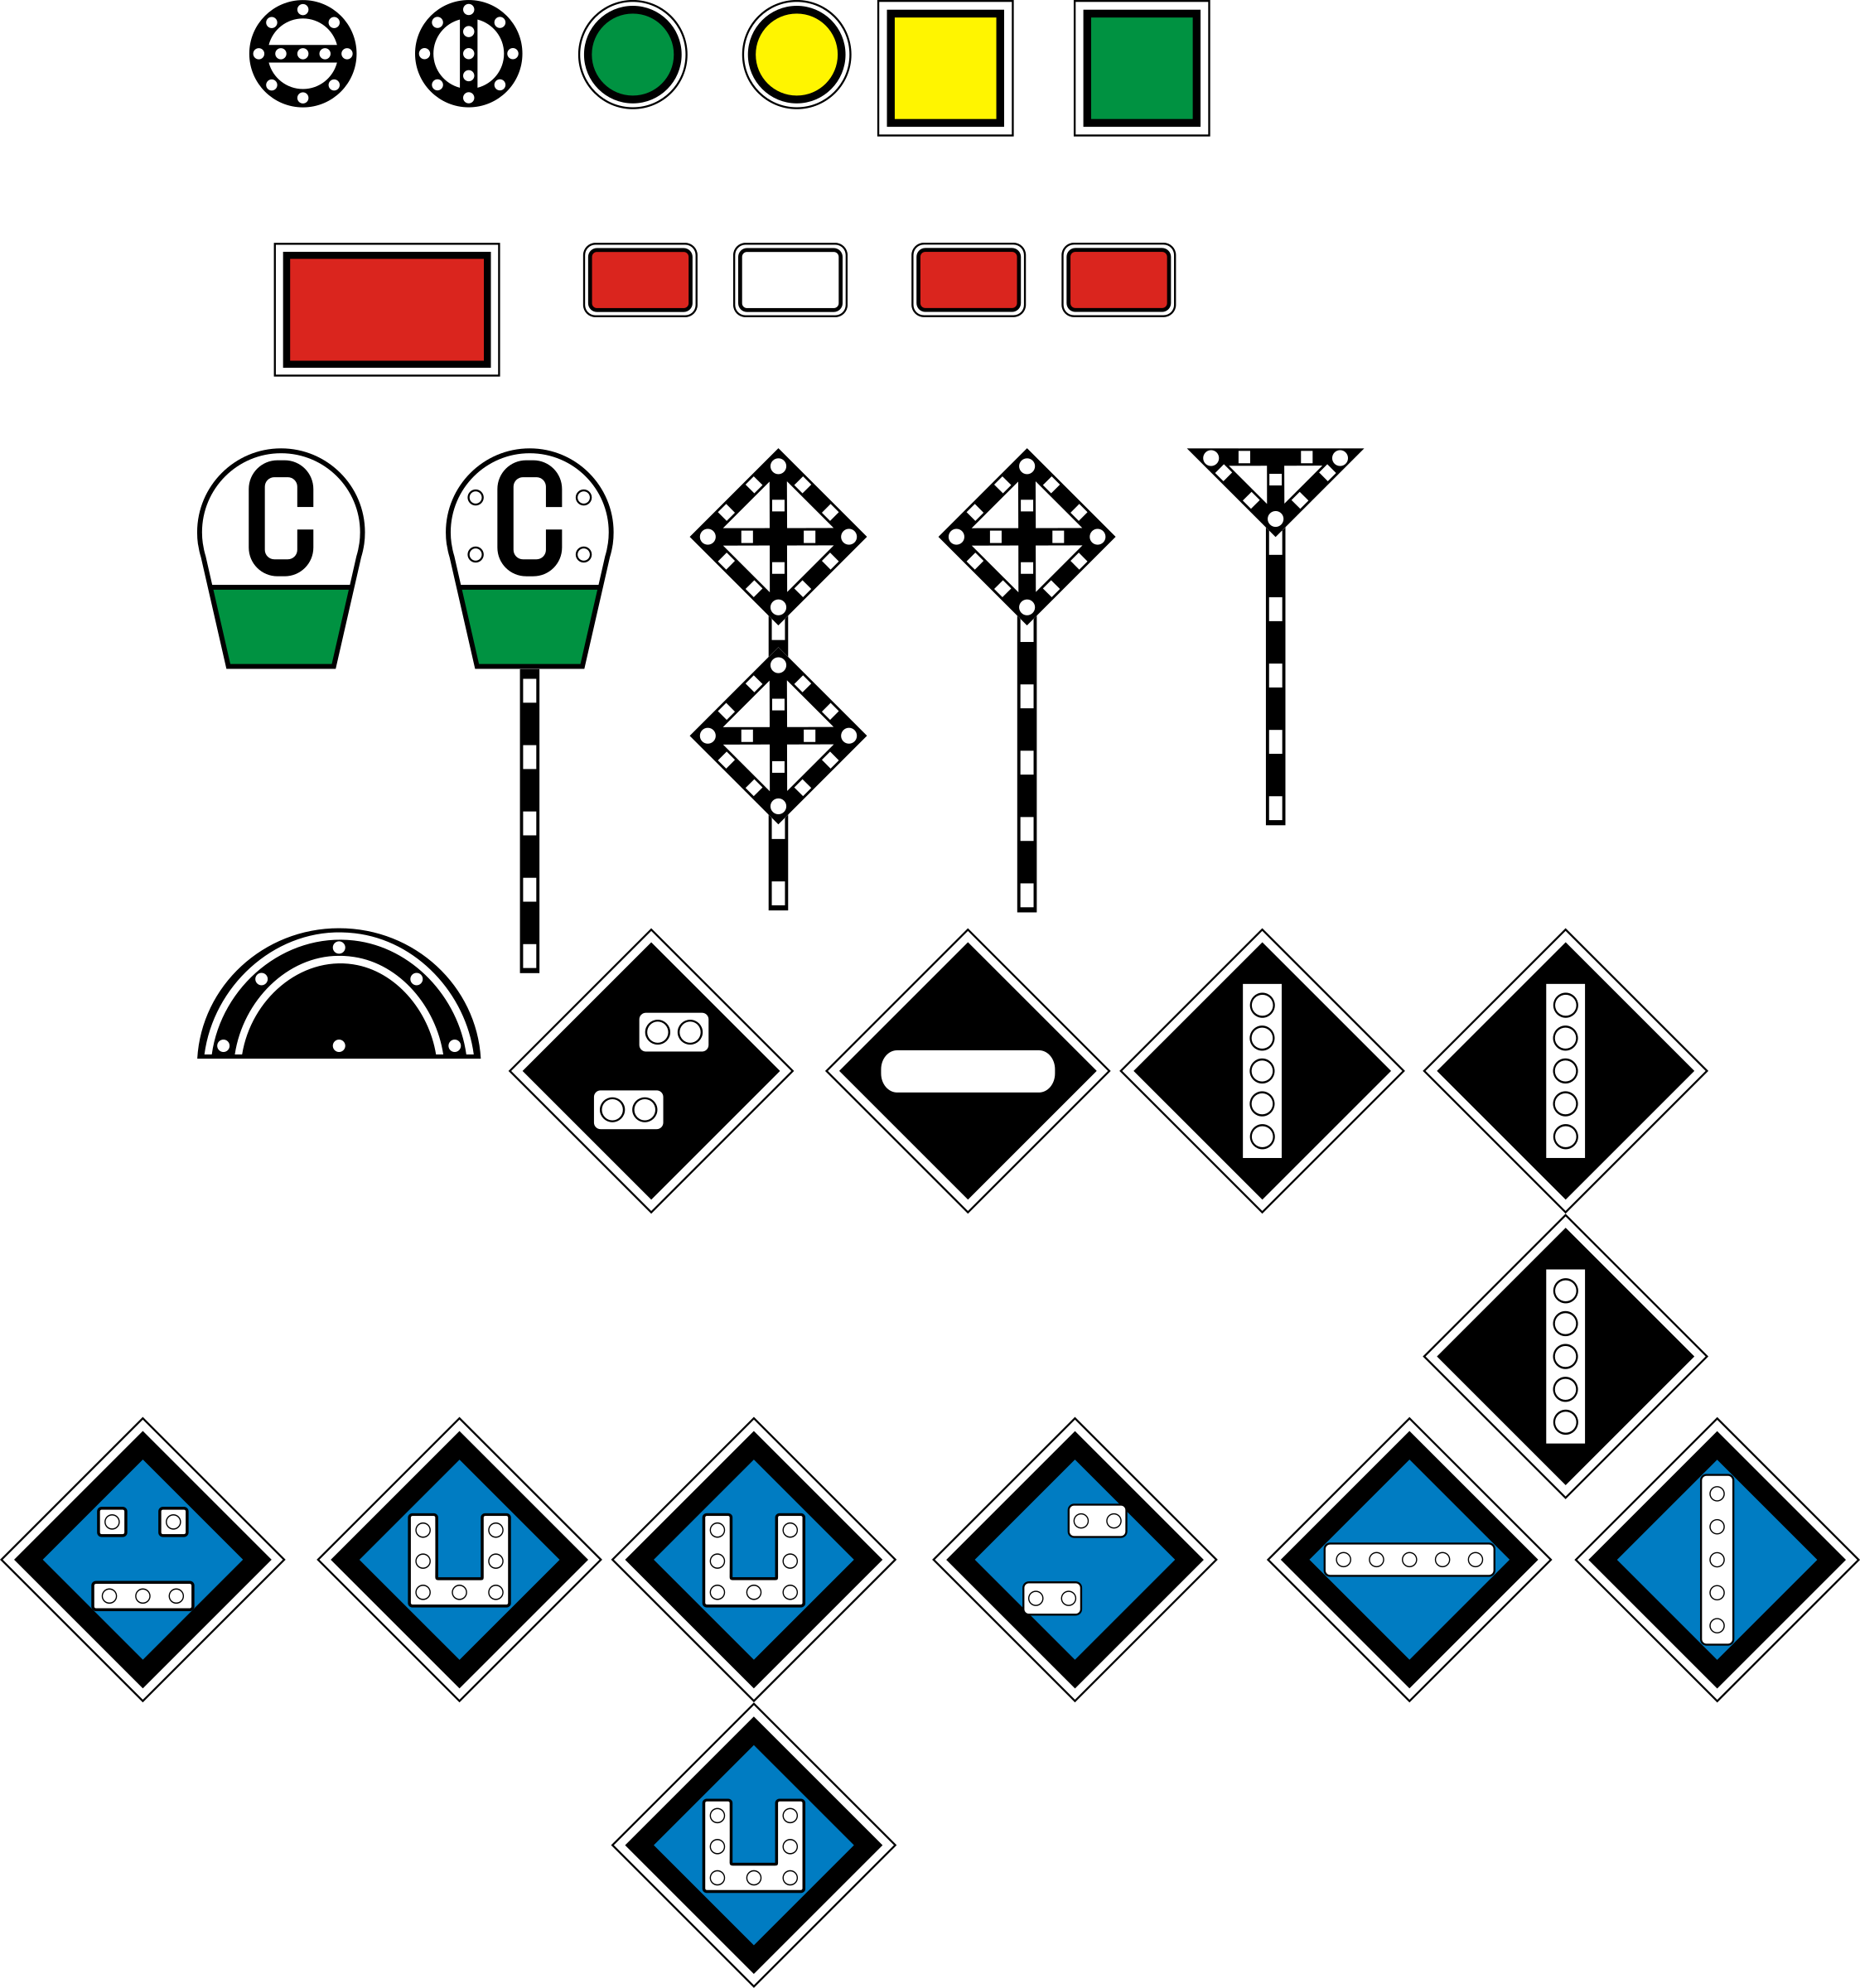 Russian (Soviet) signs of travel and signaling railways by rones